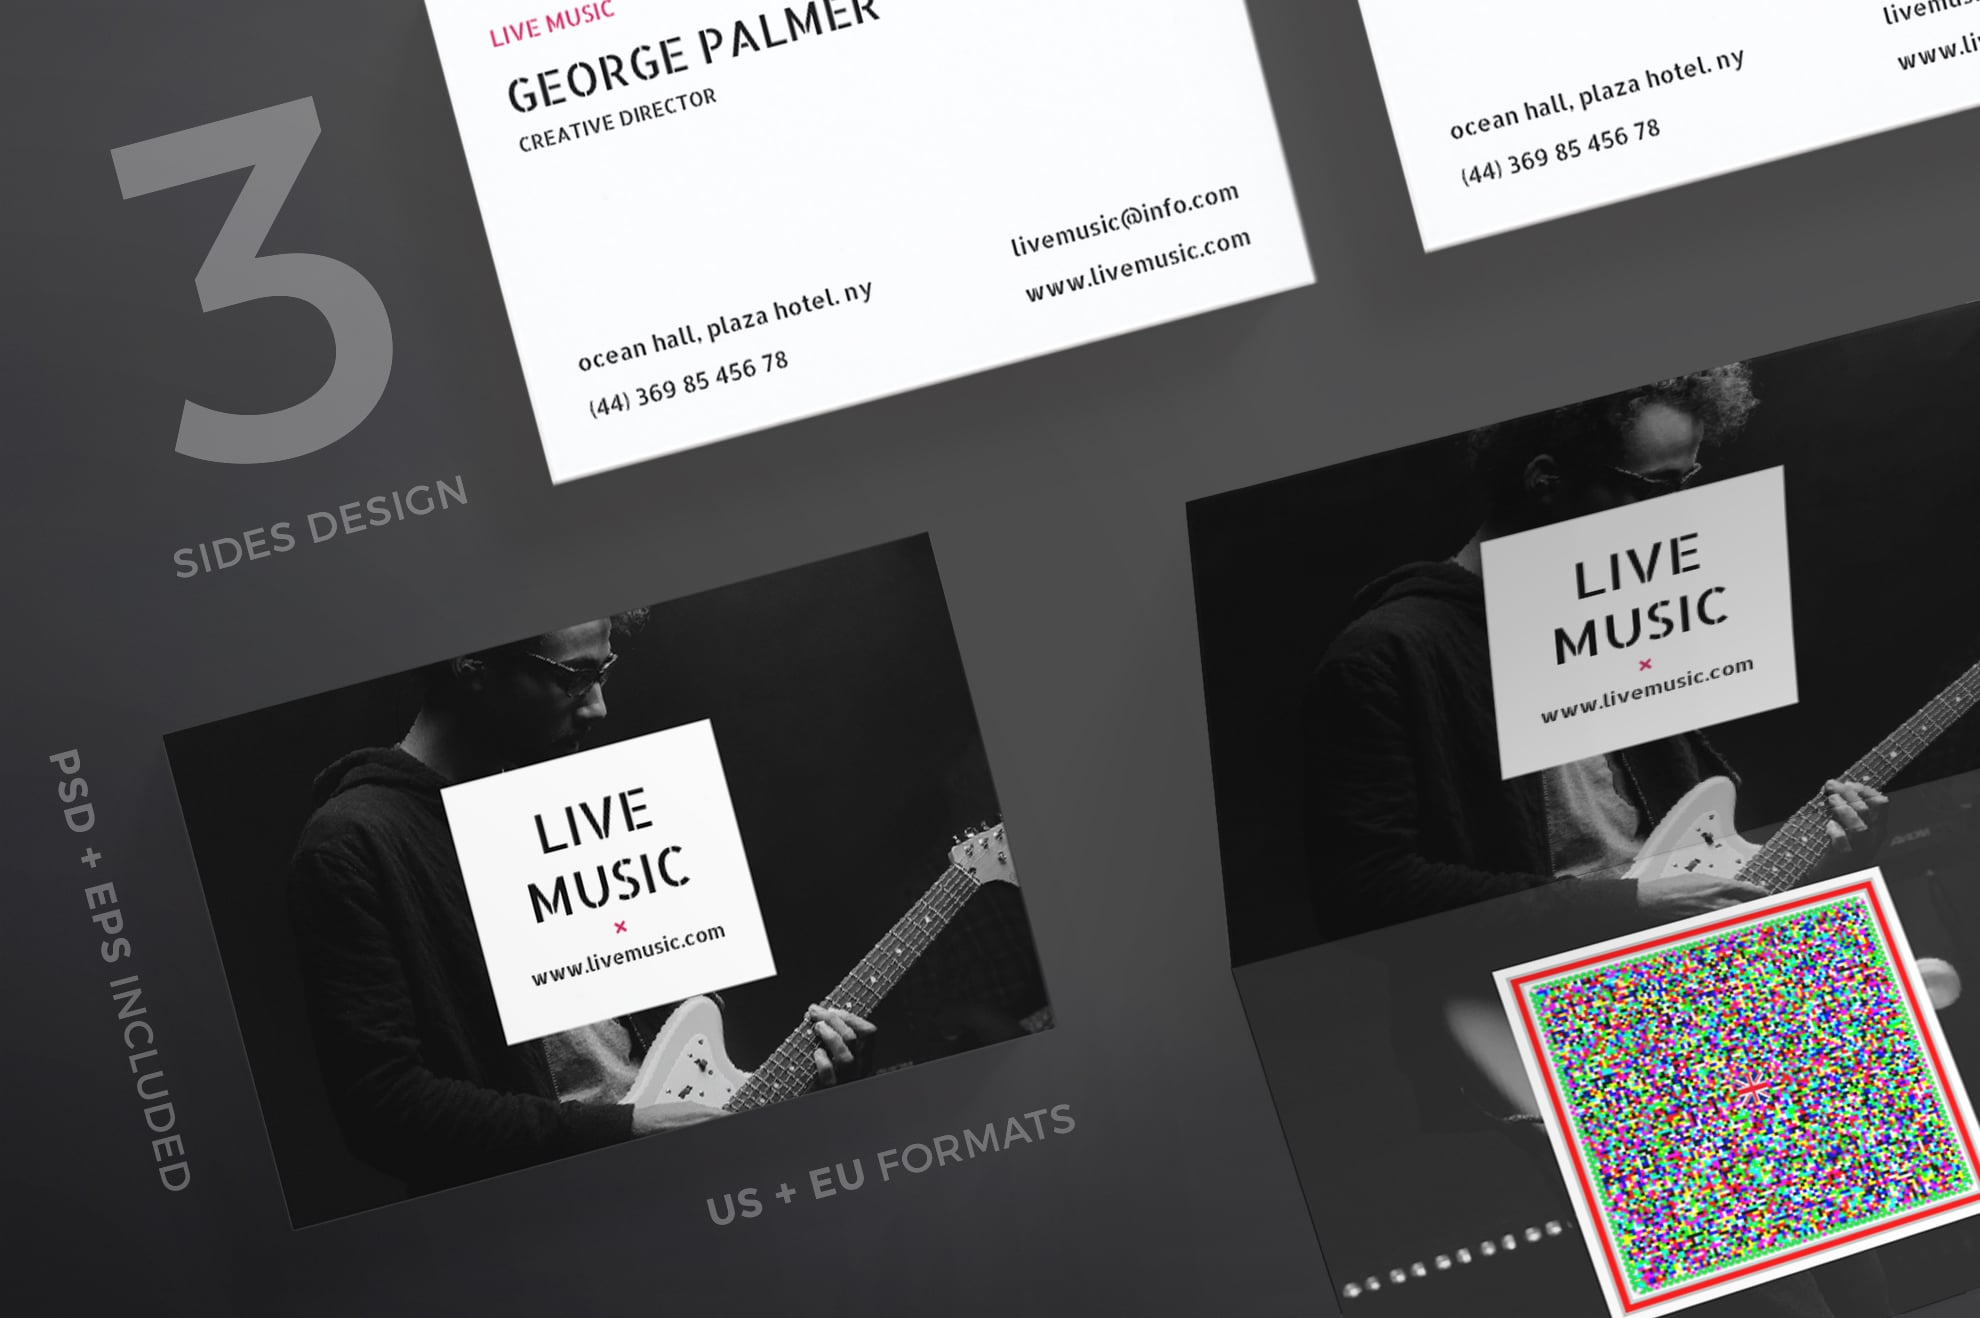 110 in 1 Business Card Bundle - 038 bc live music 63 0